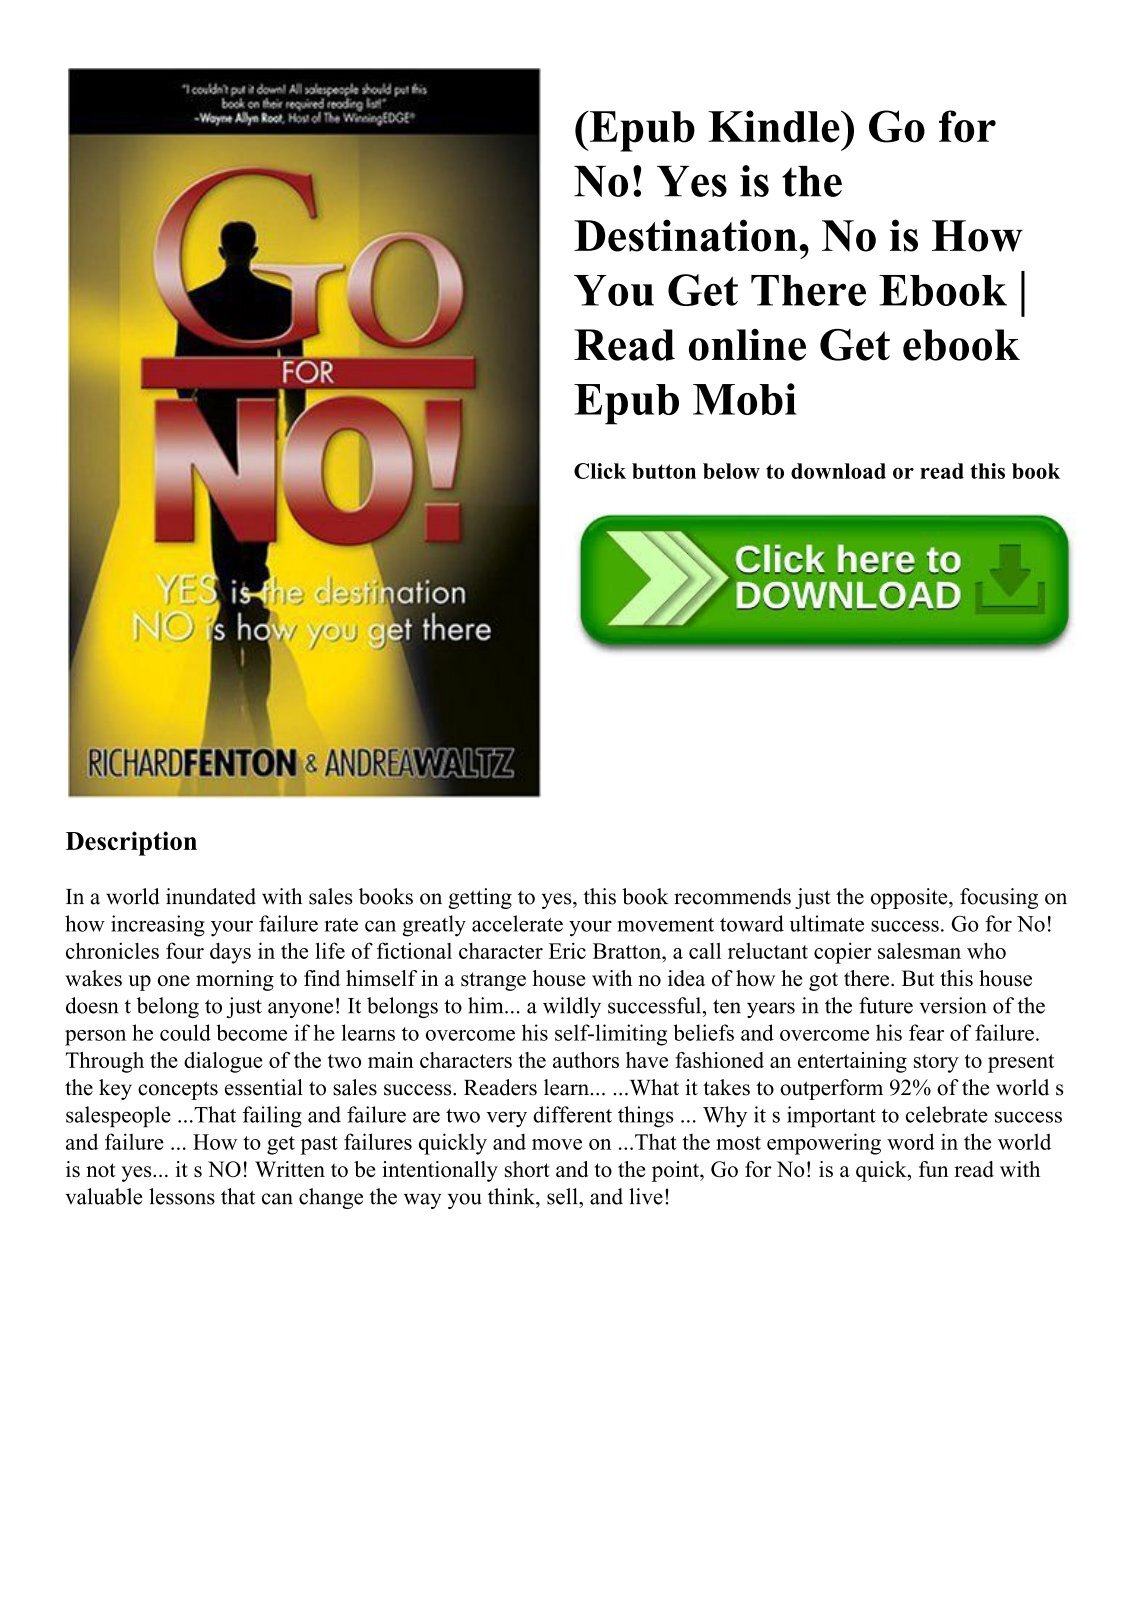 mostf4rkarleeratke3. English; |; 4 Documents; |; 0 Views. (Epub Kindle) Go  for No! Yes is the Destination No is How You